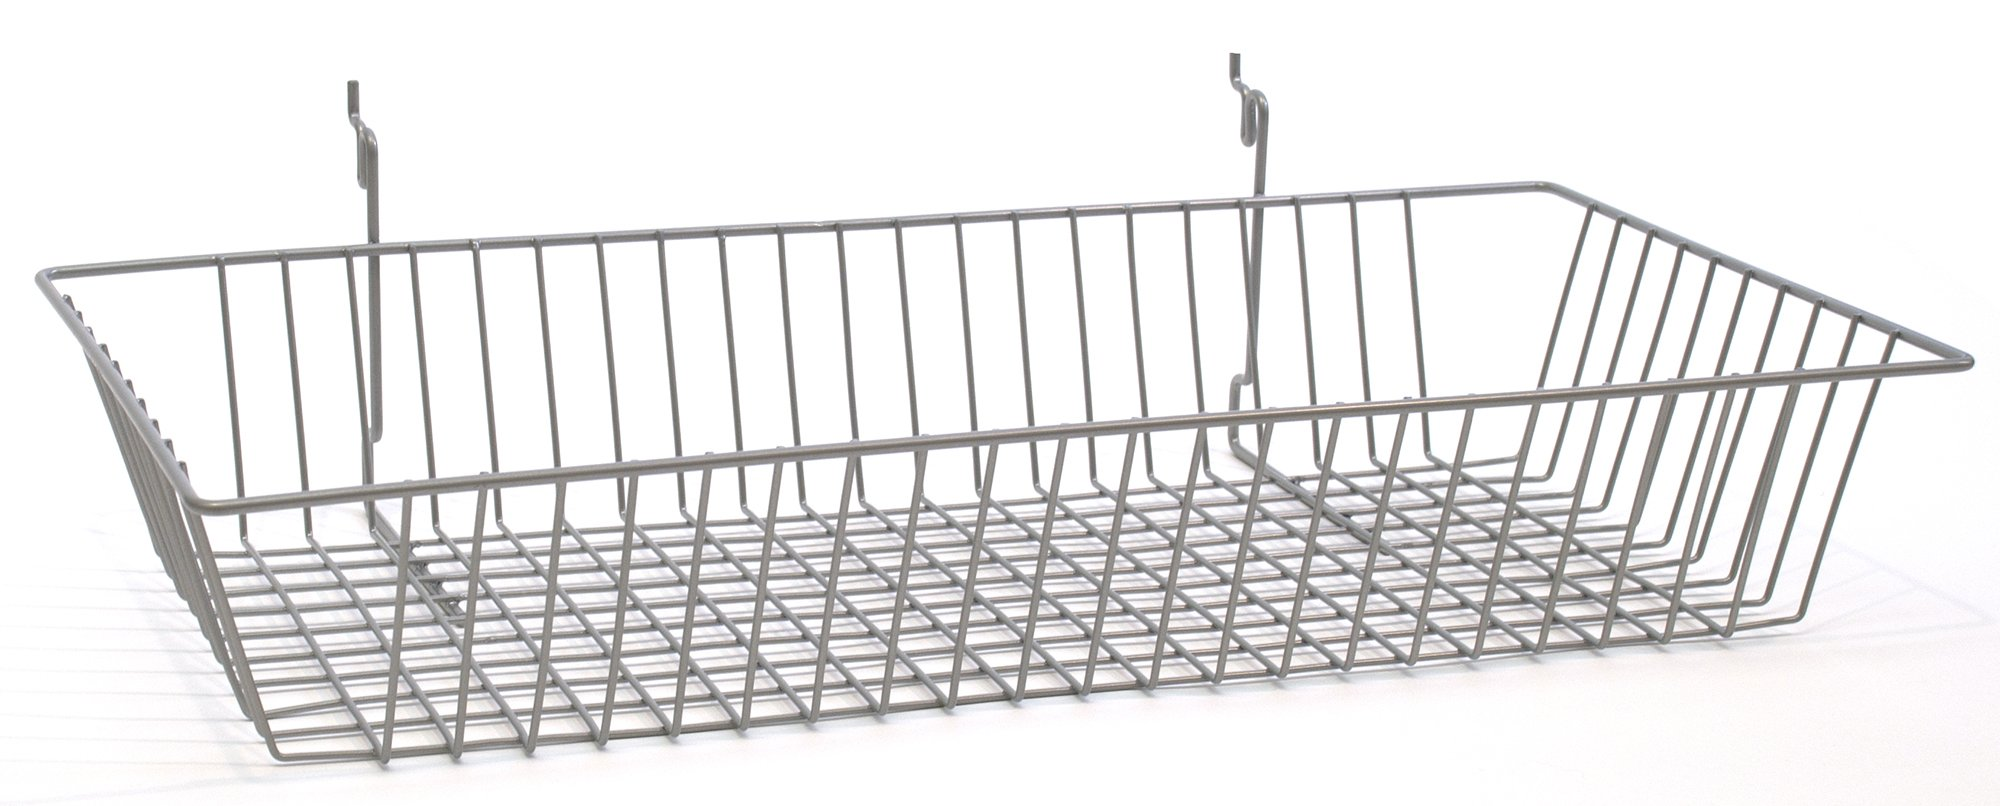 KC Store Fixtures A030103 Basket Fits Slatwall, Grid, Pegboard, 24'' W x 12'' D x 4'' H, Pc Chrome (Pack of 6)